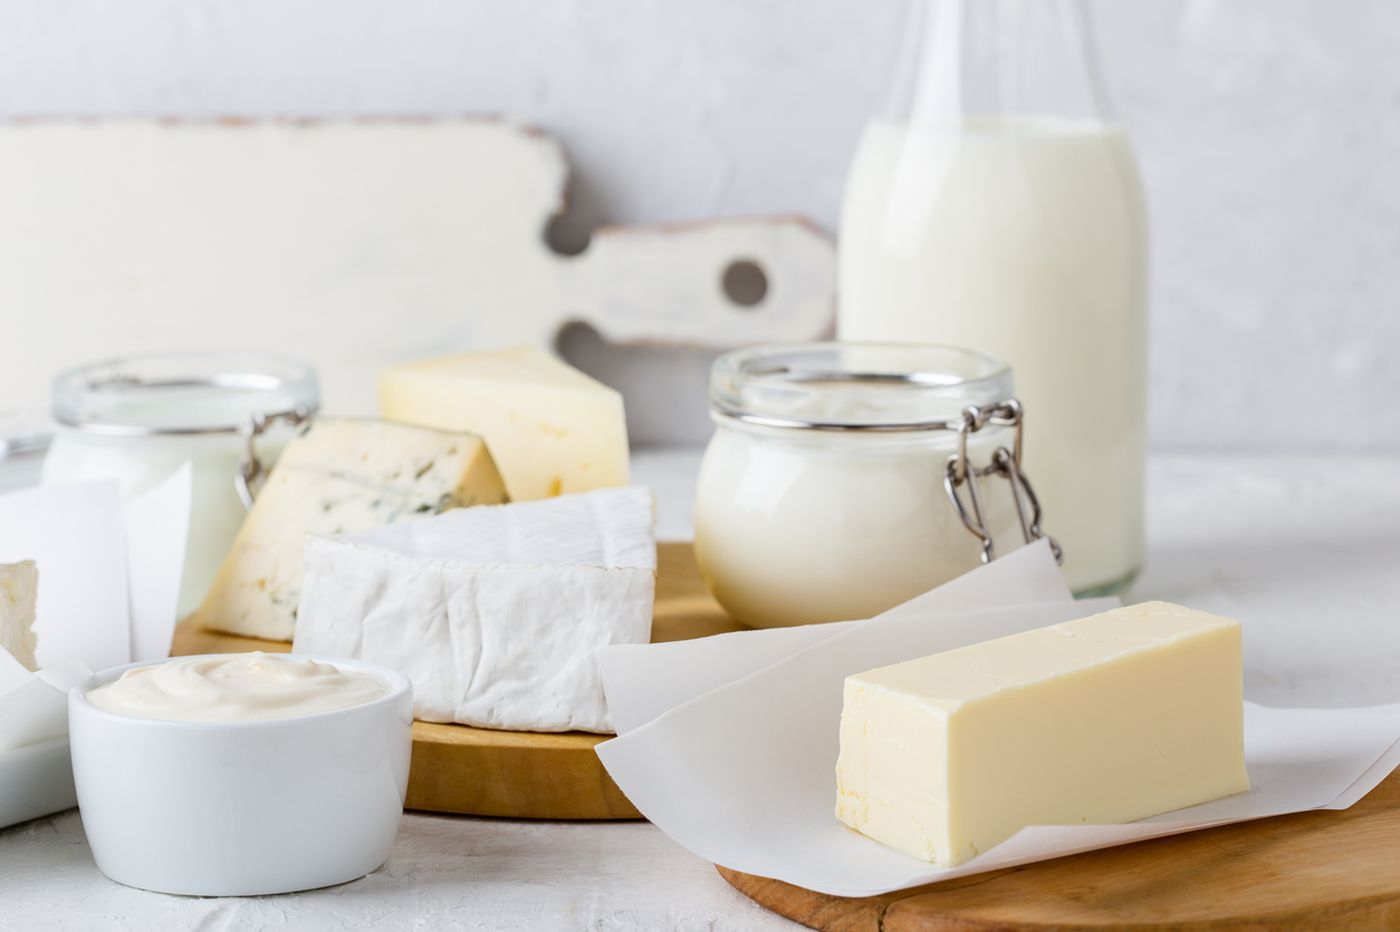 Full-fat dairy might not be as unhealthy as feared. But don't load up on cheese yet.